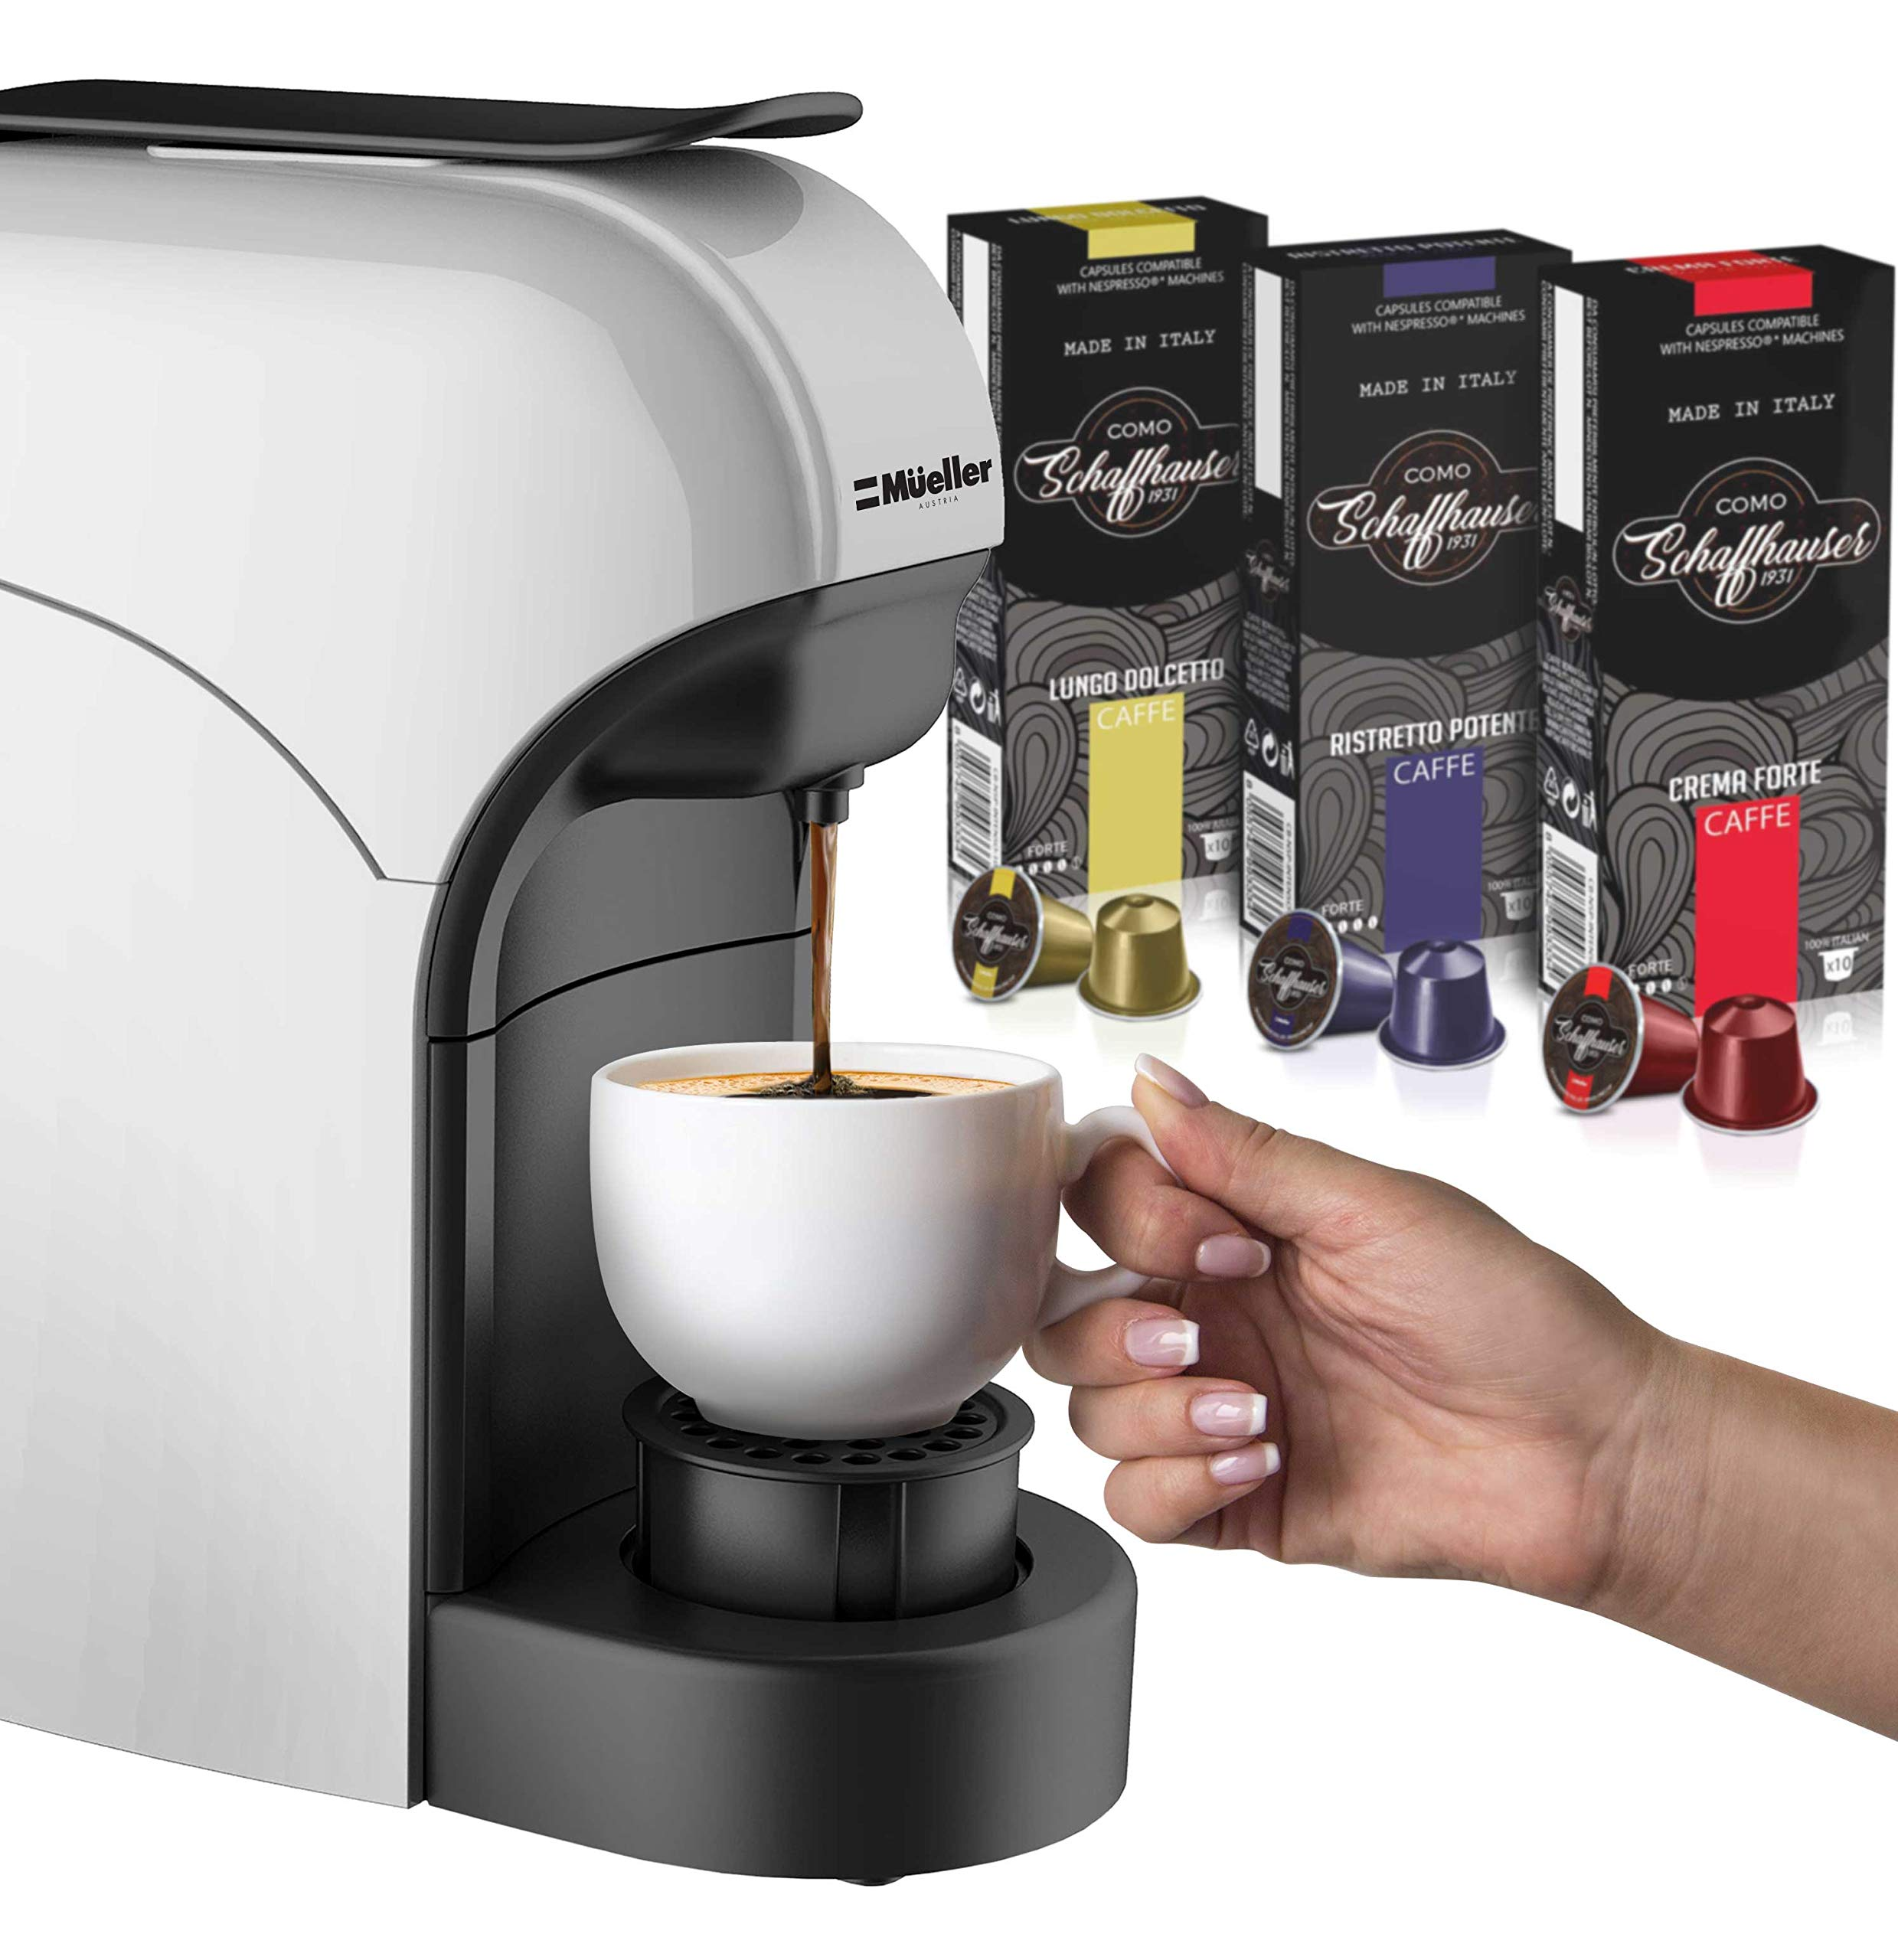 Mueller Espresso Machine for Nespresso Compatible Capsule, Premium Italian 20 Bar High Pressure Pump, 25s Fast Heating with Energy Saving System, Programmable Buttons for Espresso and Lungo, 1400W by Mueller Austria (Image #6)